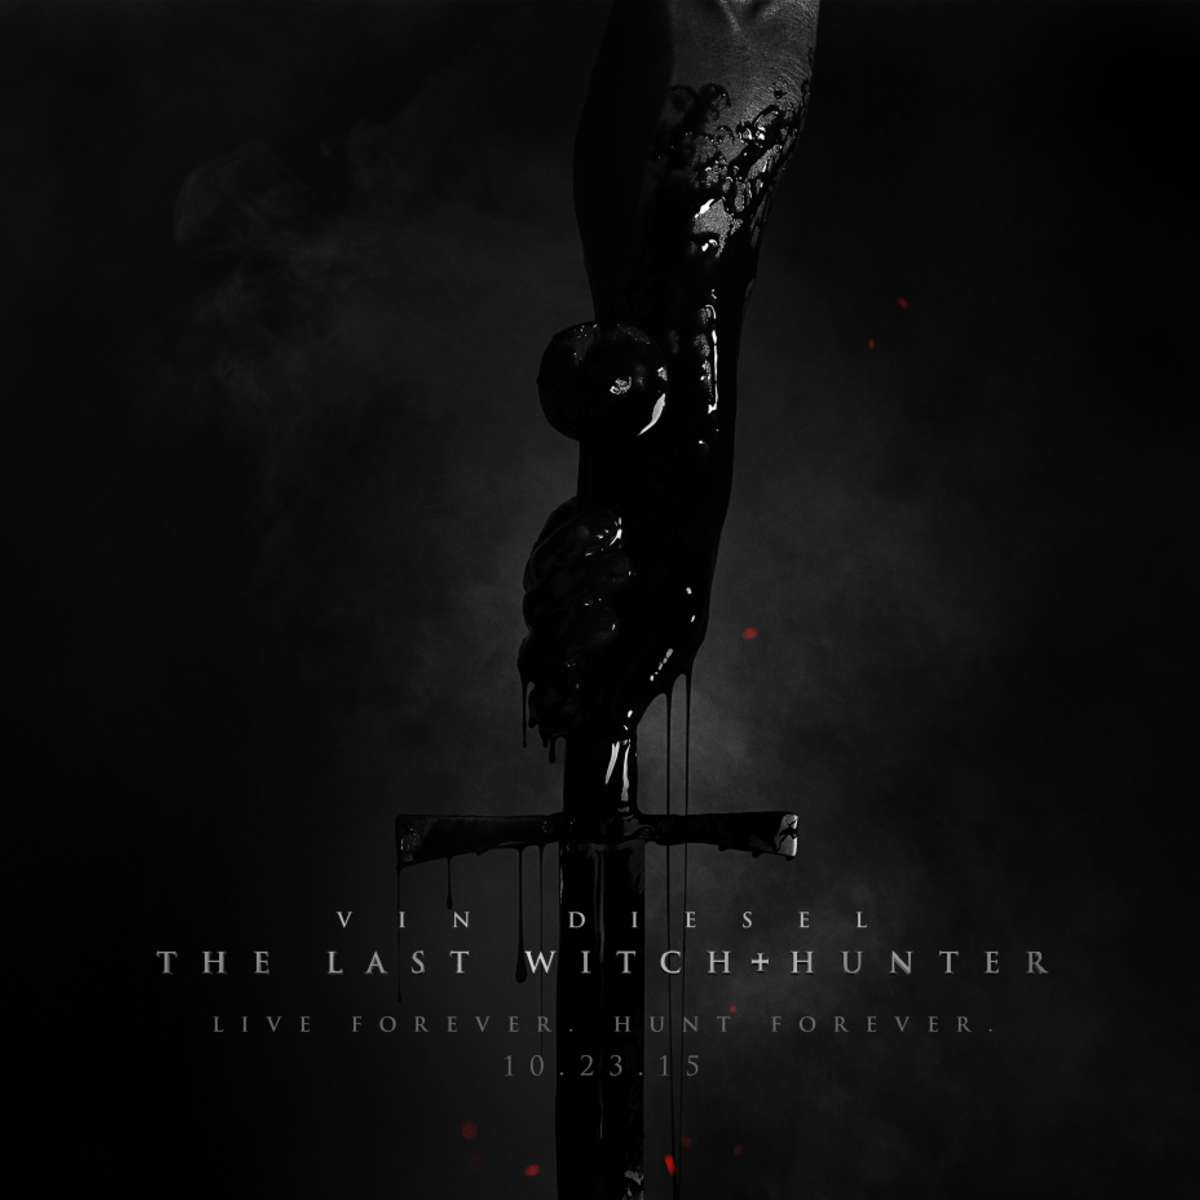 Last_Witch_Hunter-Poster_2_0.jpg